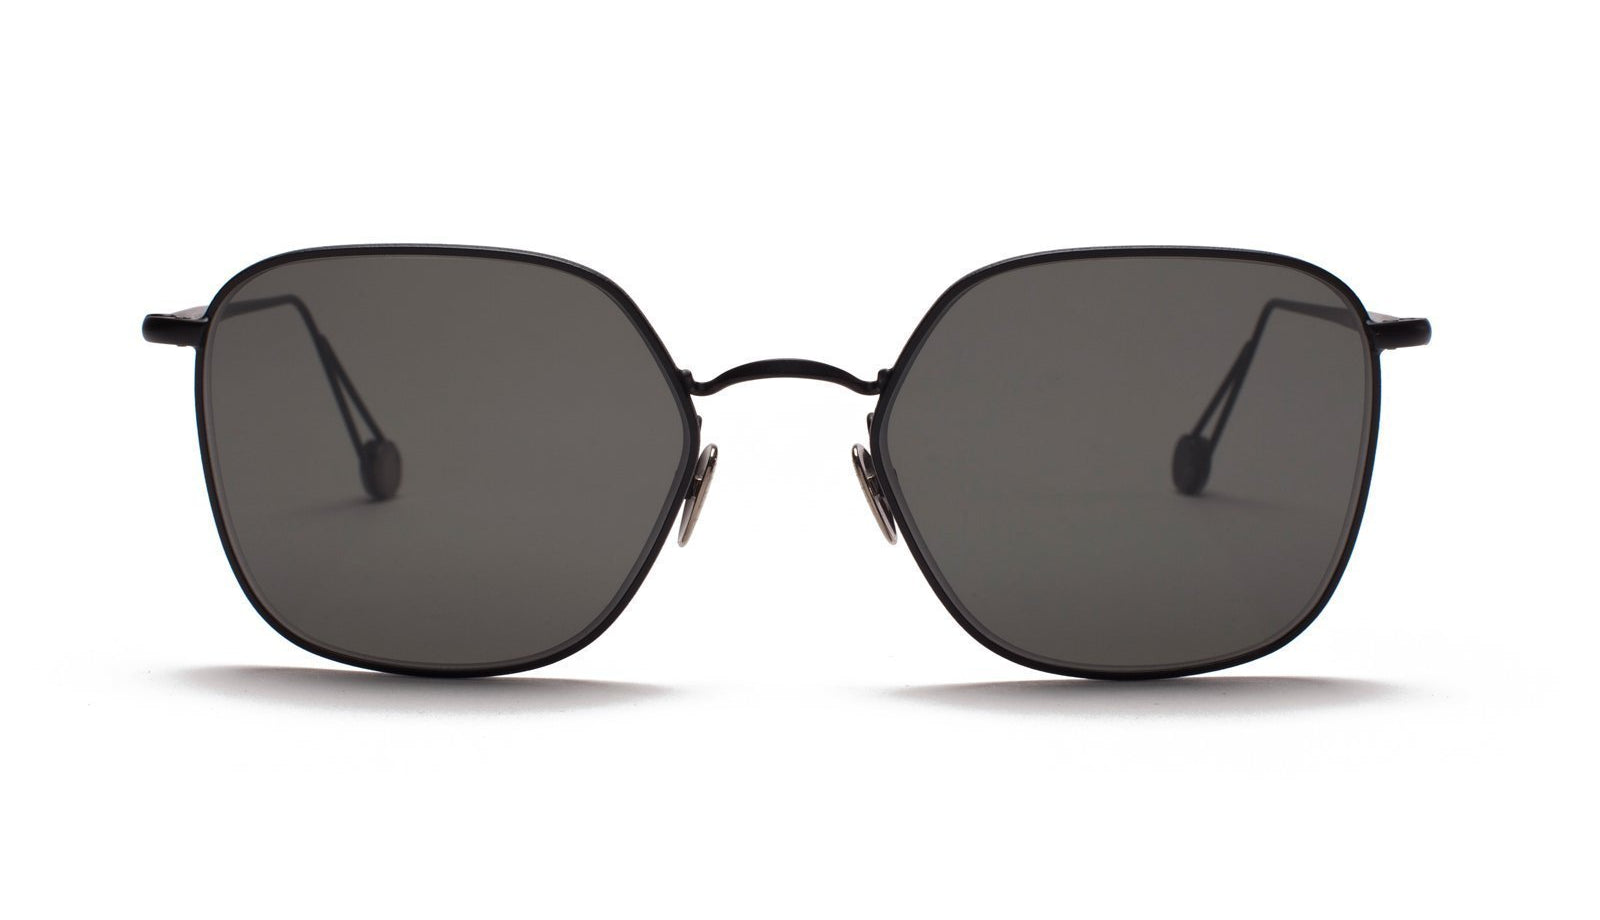 Ahlem Place de la Chapelle Sunglasses Black